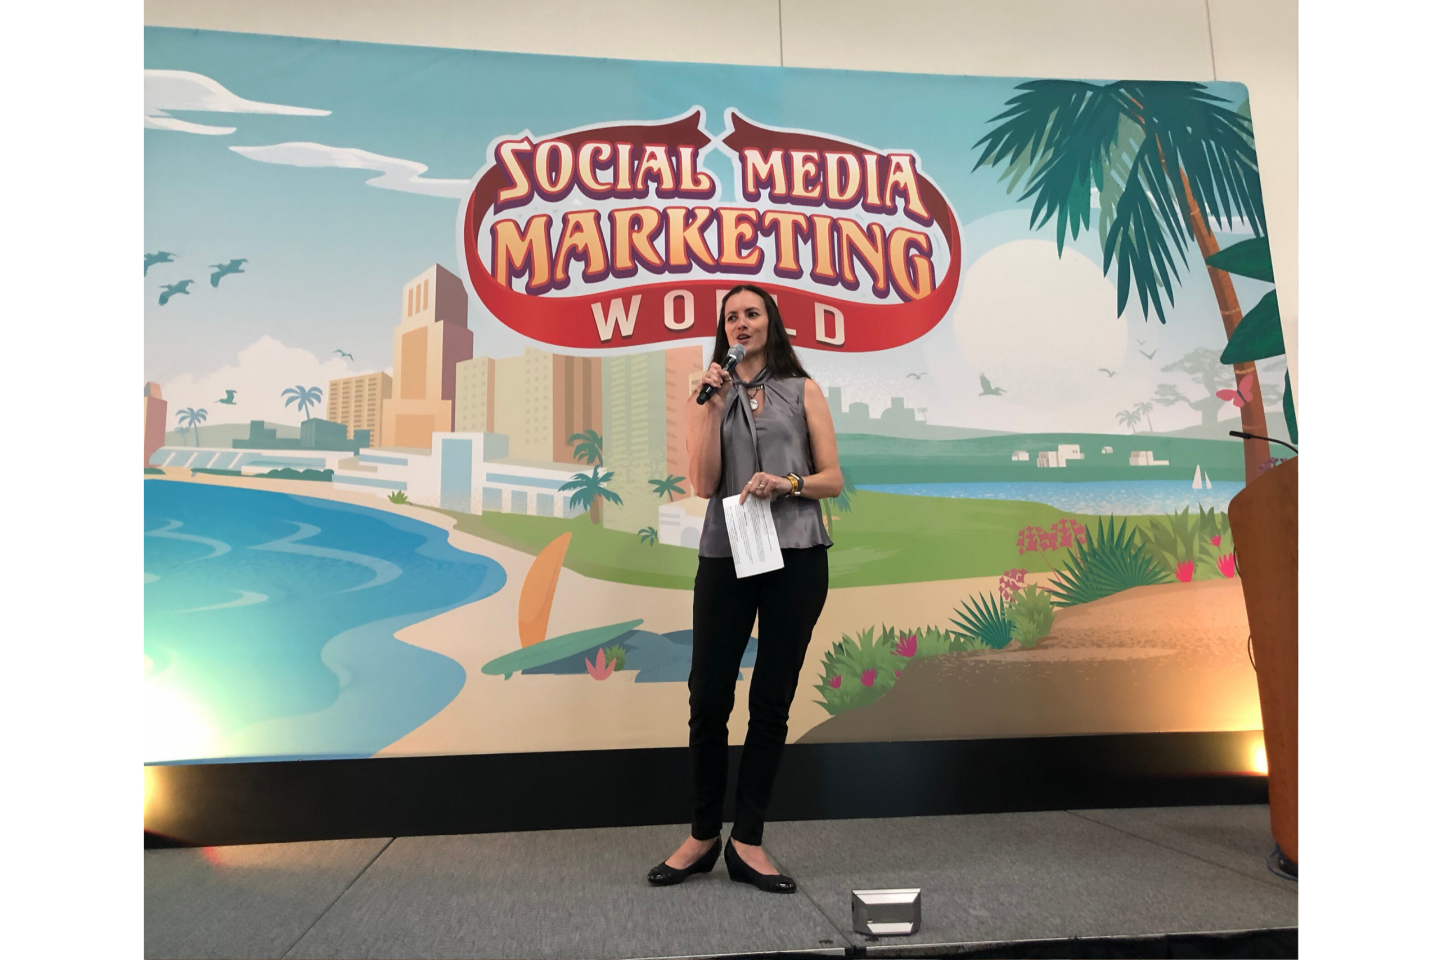 Speaking at Social Media Marketing World